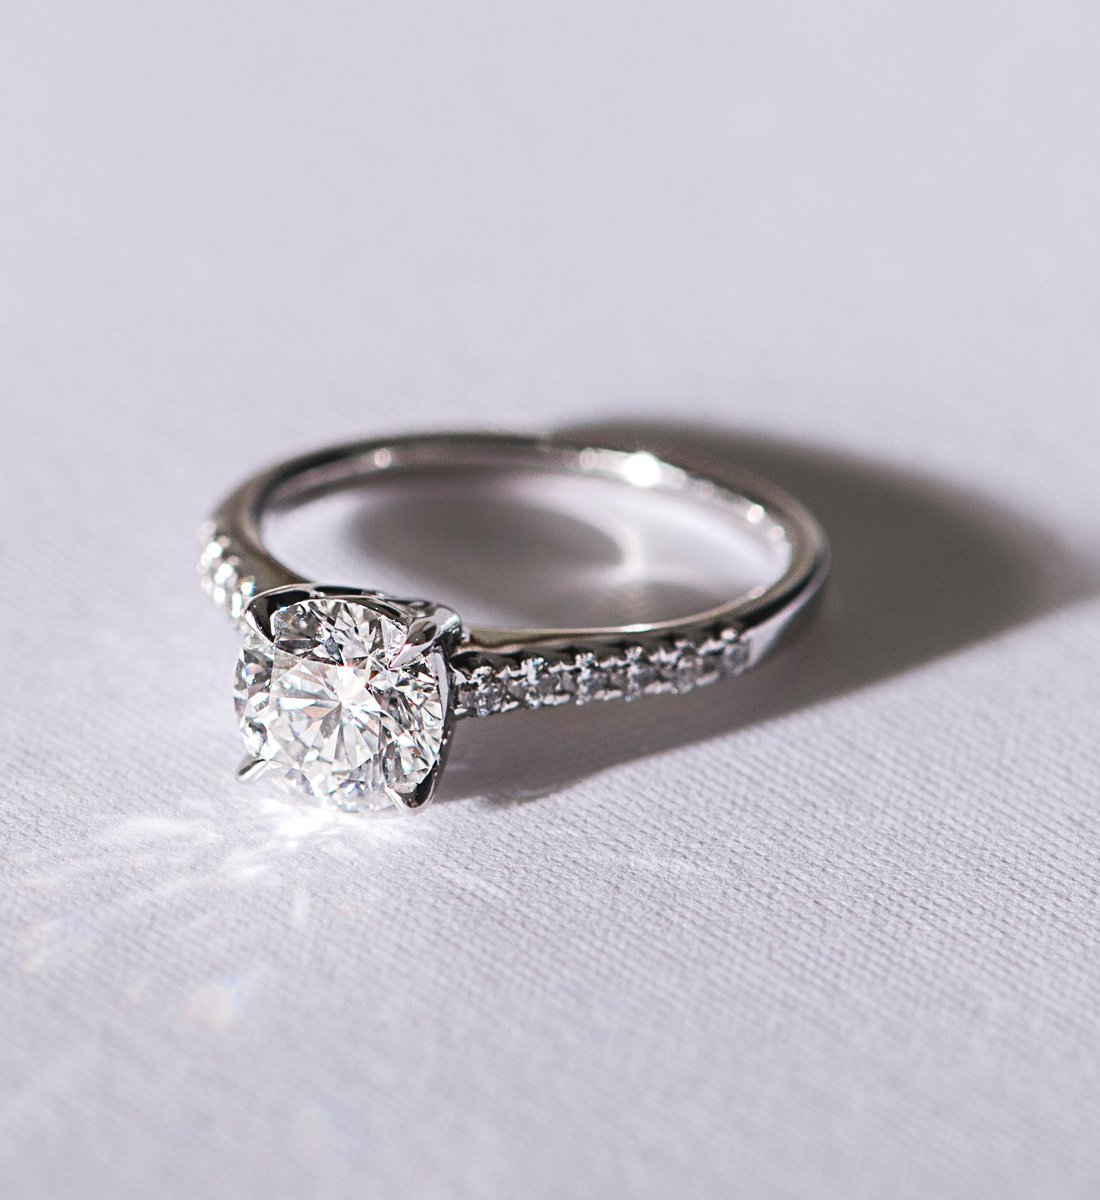 Frank Co On Twitter Let The Ethereal Glow Of Our Diamond Brigthen Both Your Day And Night Franknco Jewellery Ring Classic